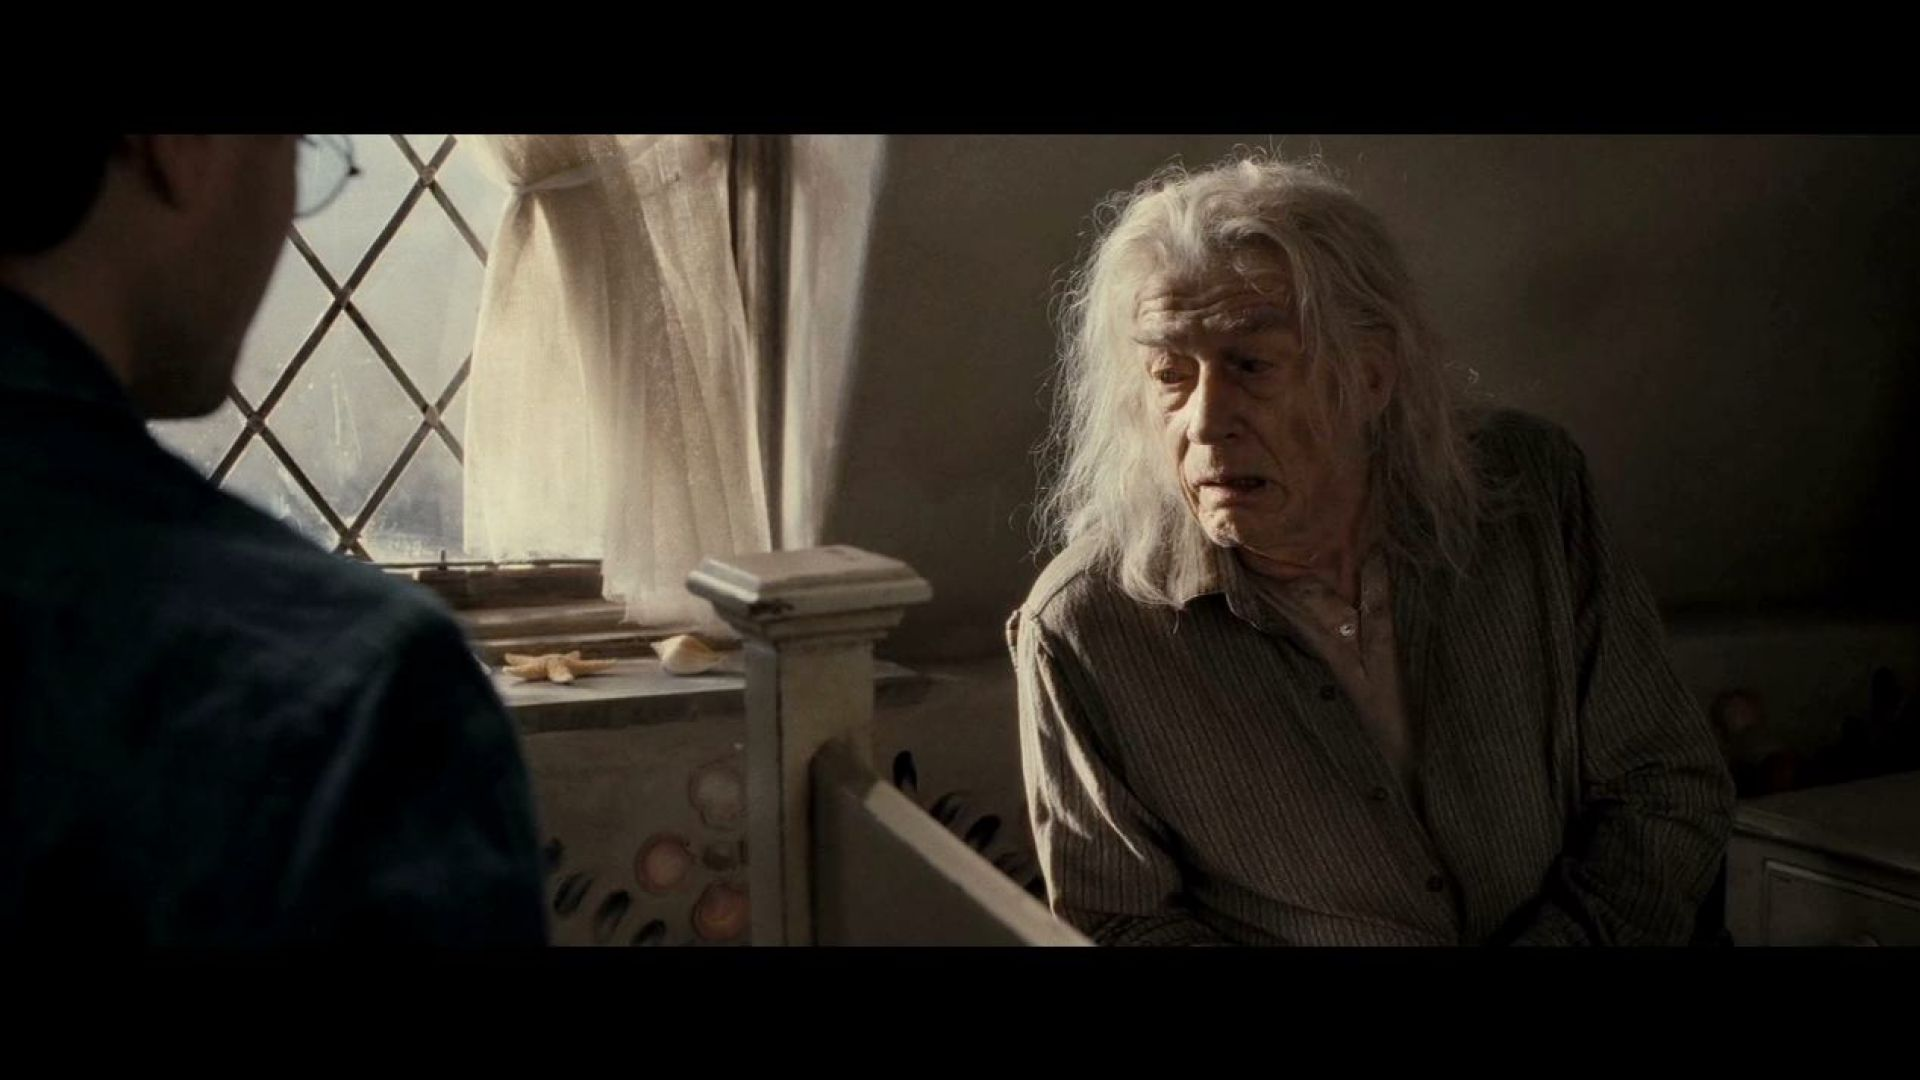 Harry and Mr. Ollivander talk about the Deathly Hallows: the Elder Wand, the Cloak of Invisibility and the Resurrection Stone